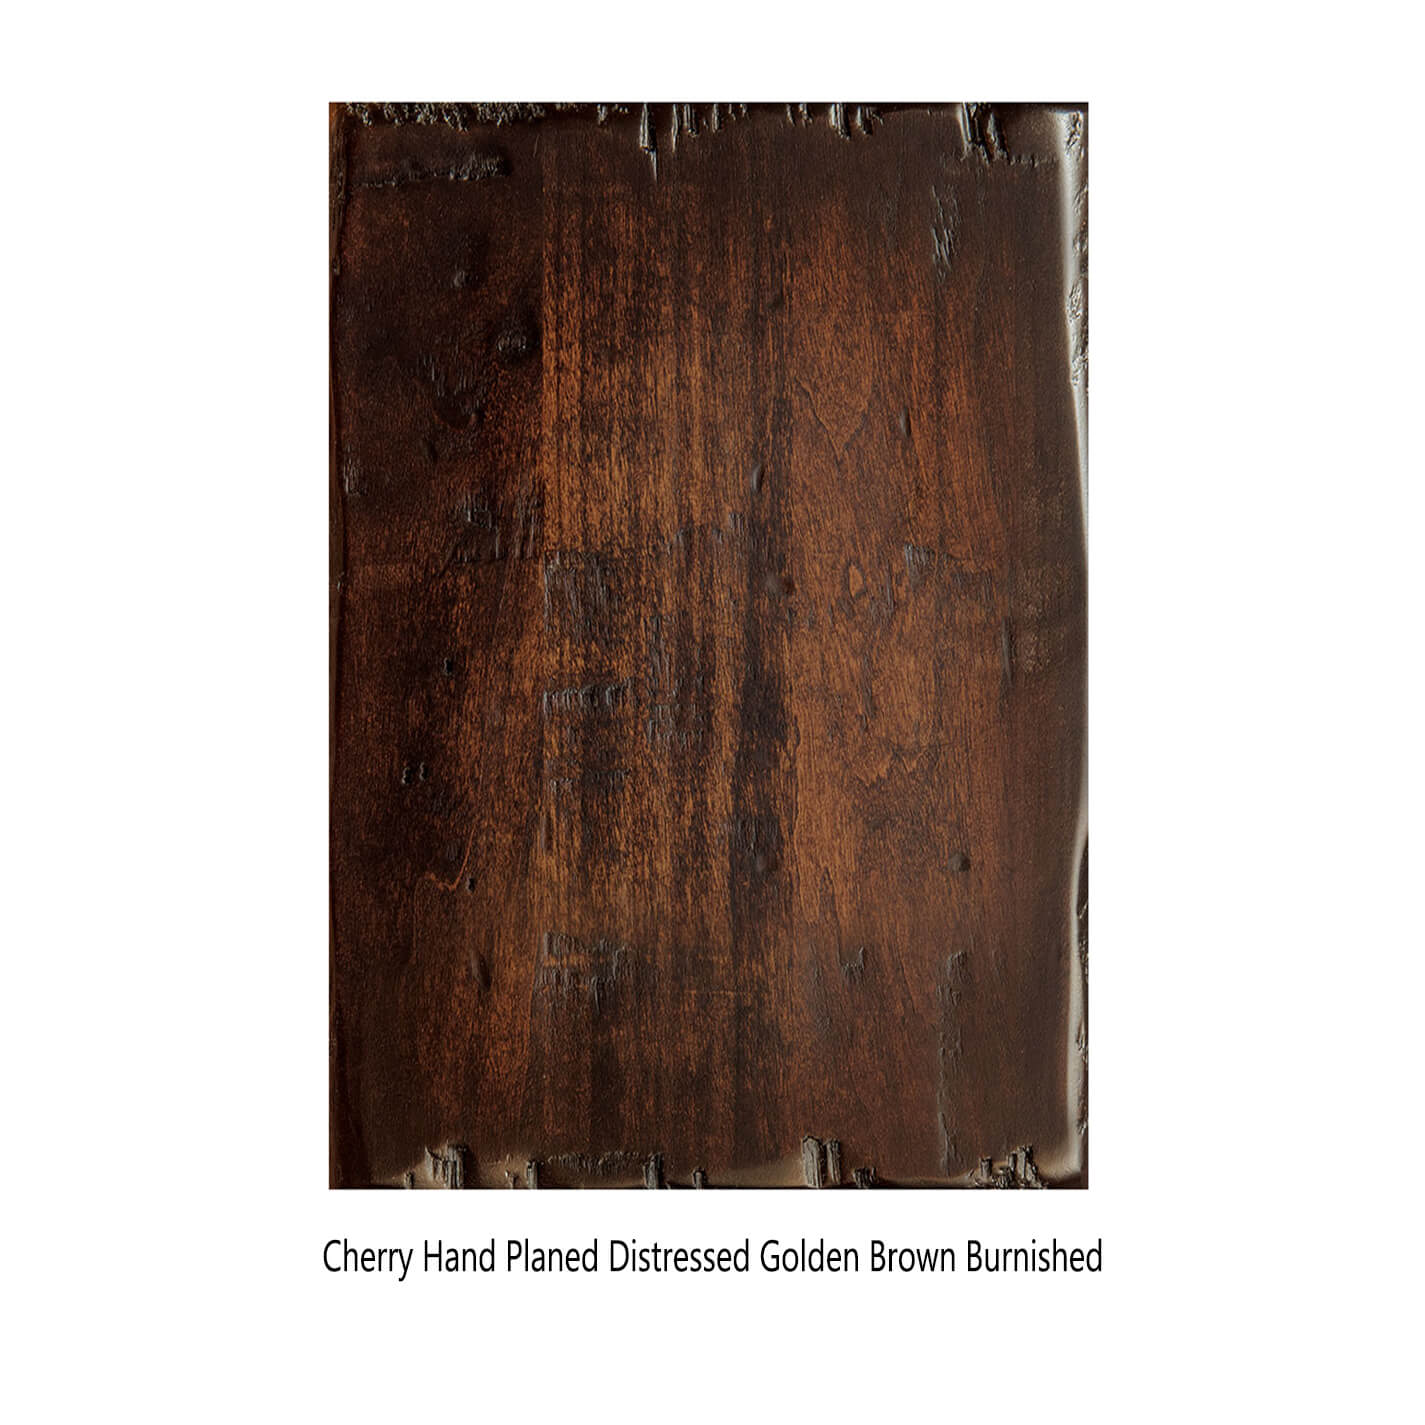 cherry-hand-planed-distressed-golden-brown-burnished-category-4-10-sheen-copy.jpg